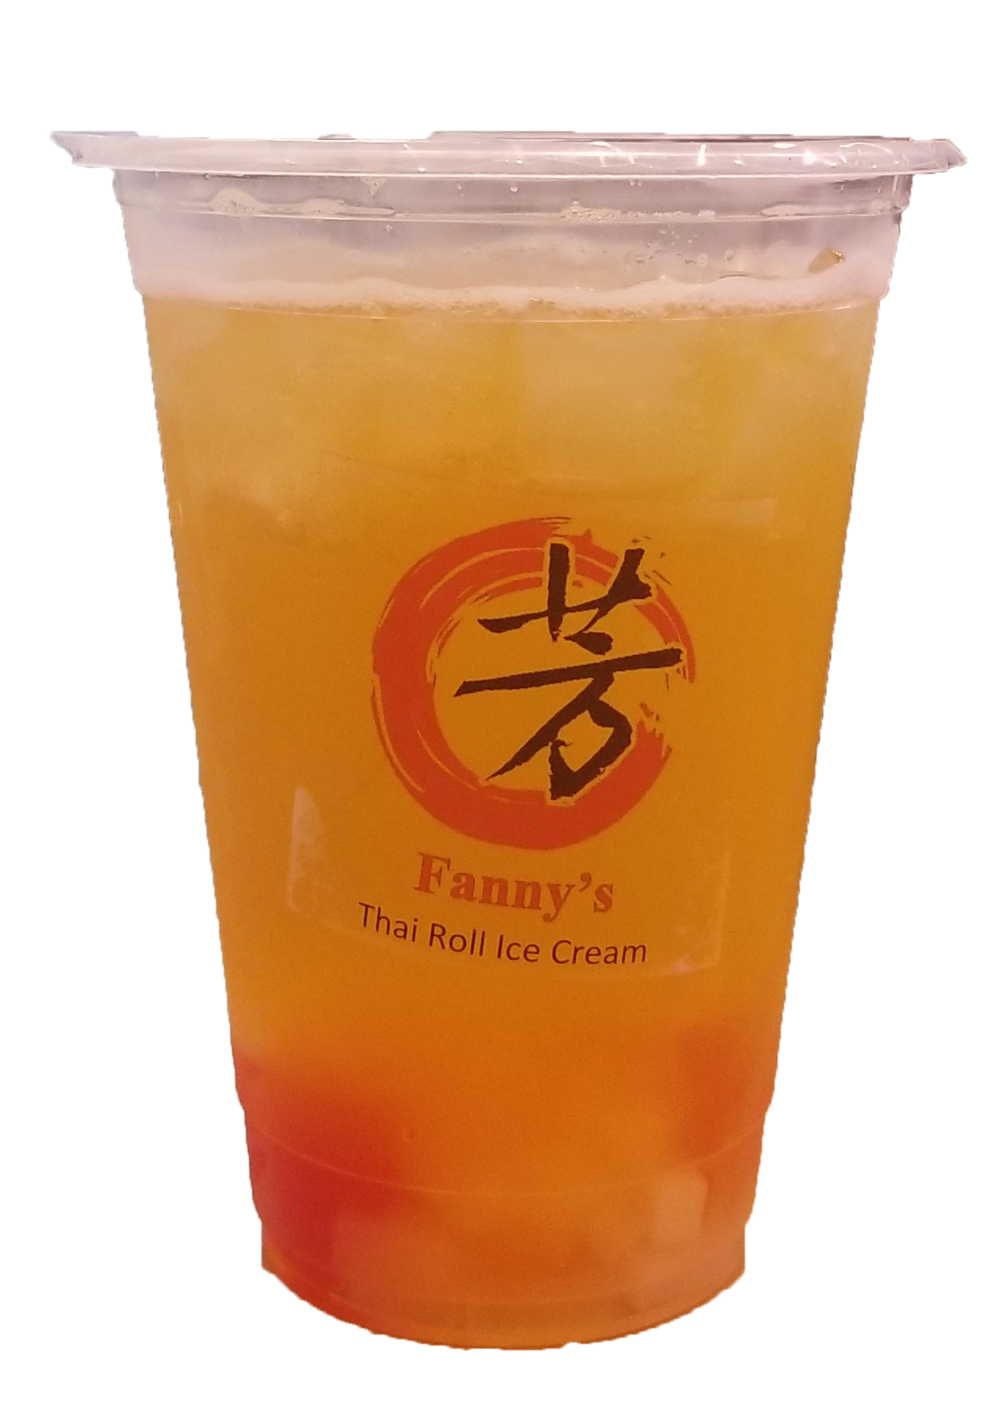 Pineapple flavor green tea with Pineapple and Rainbow Jelly